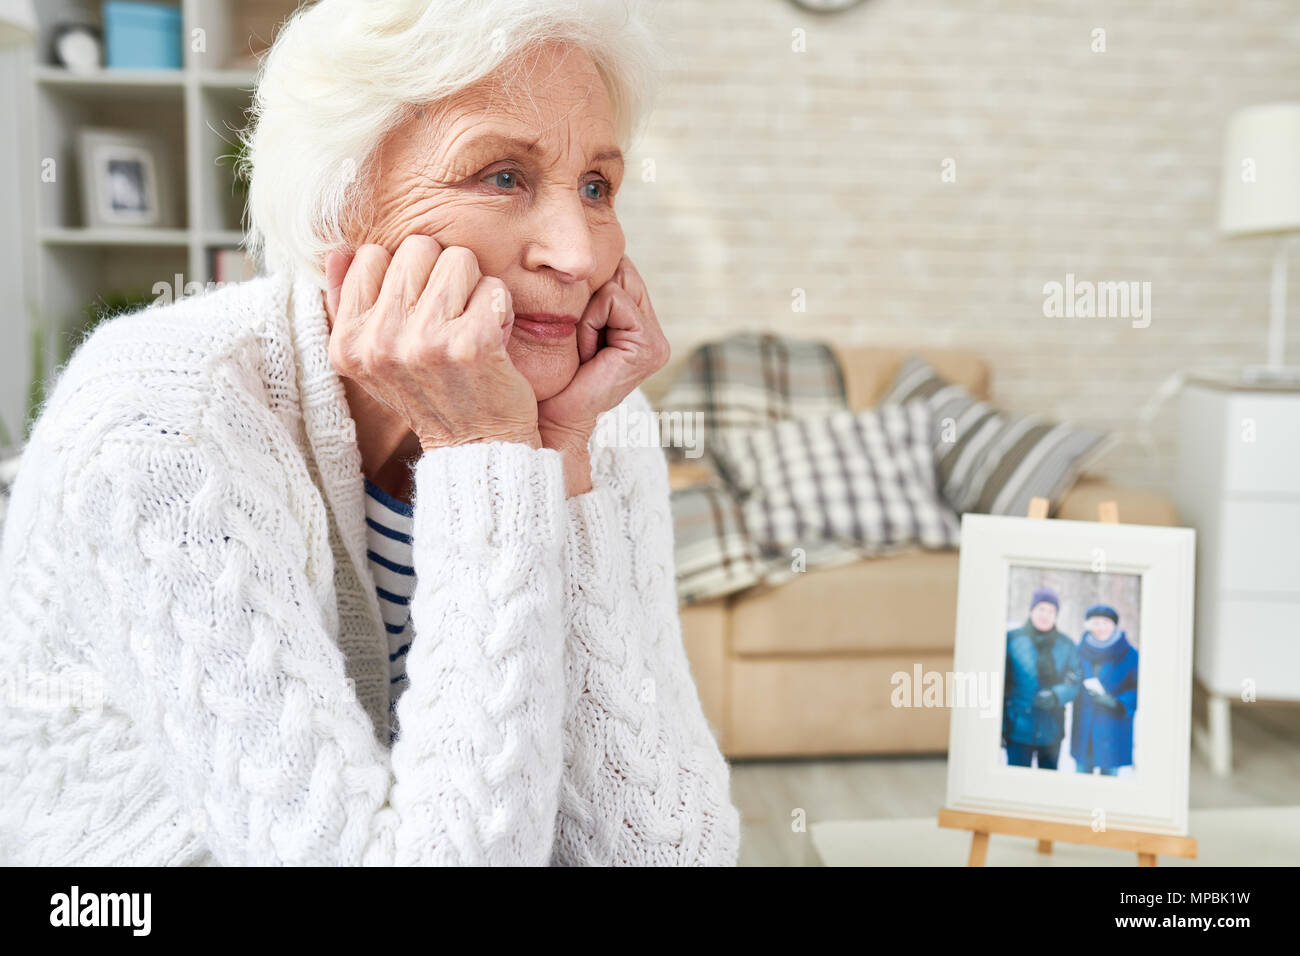 Lonely Senior Woman Crying - Stock Image